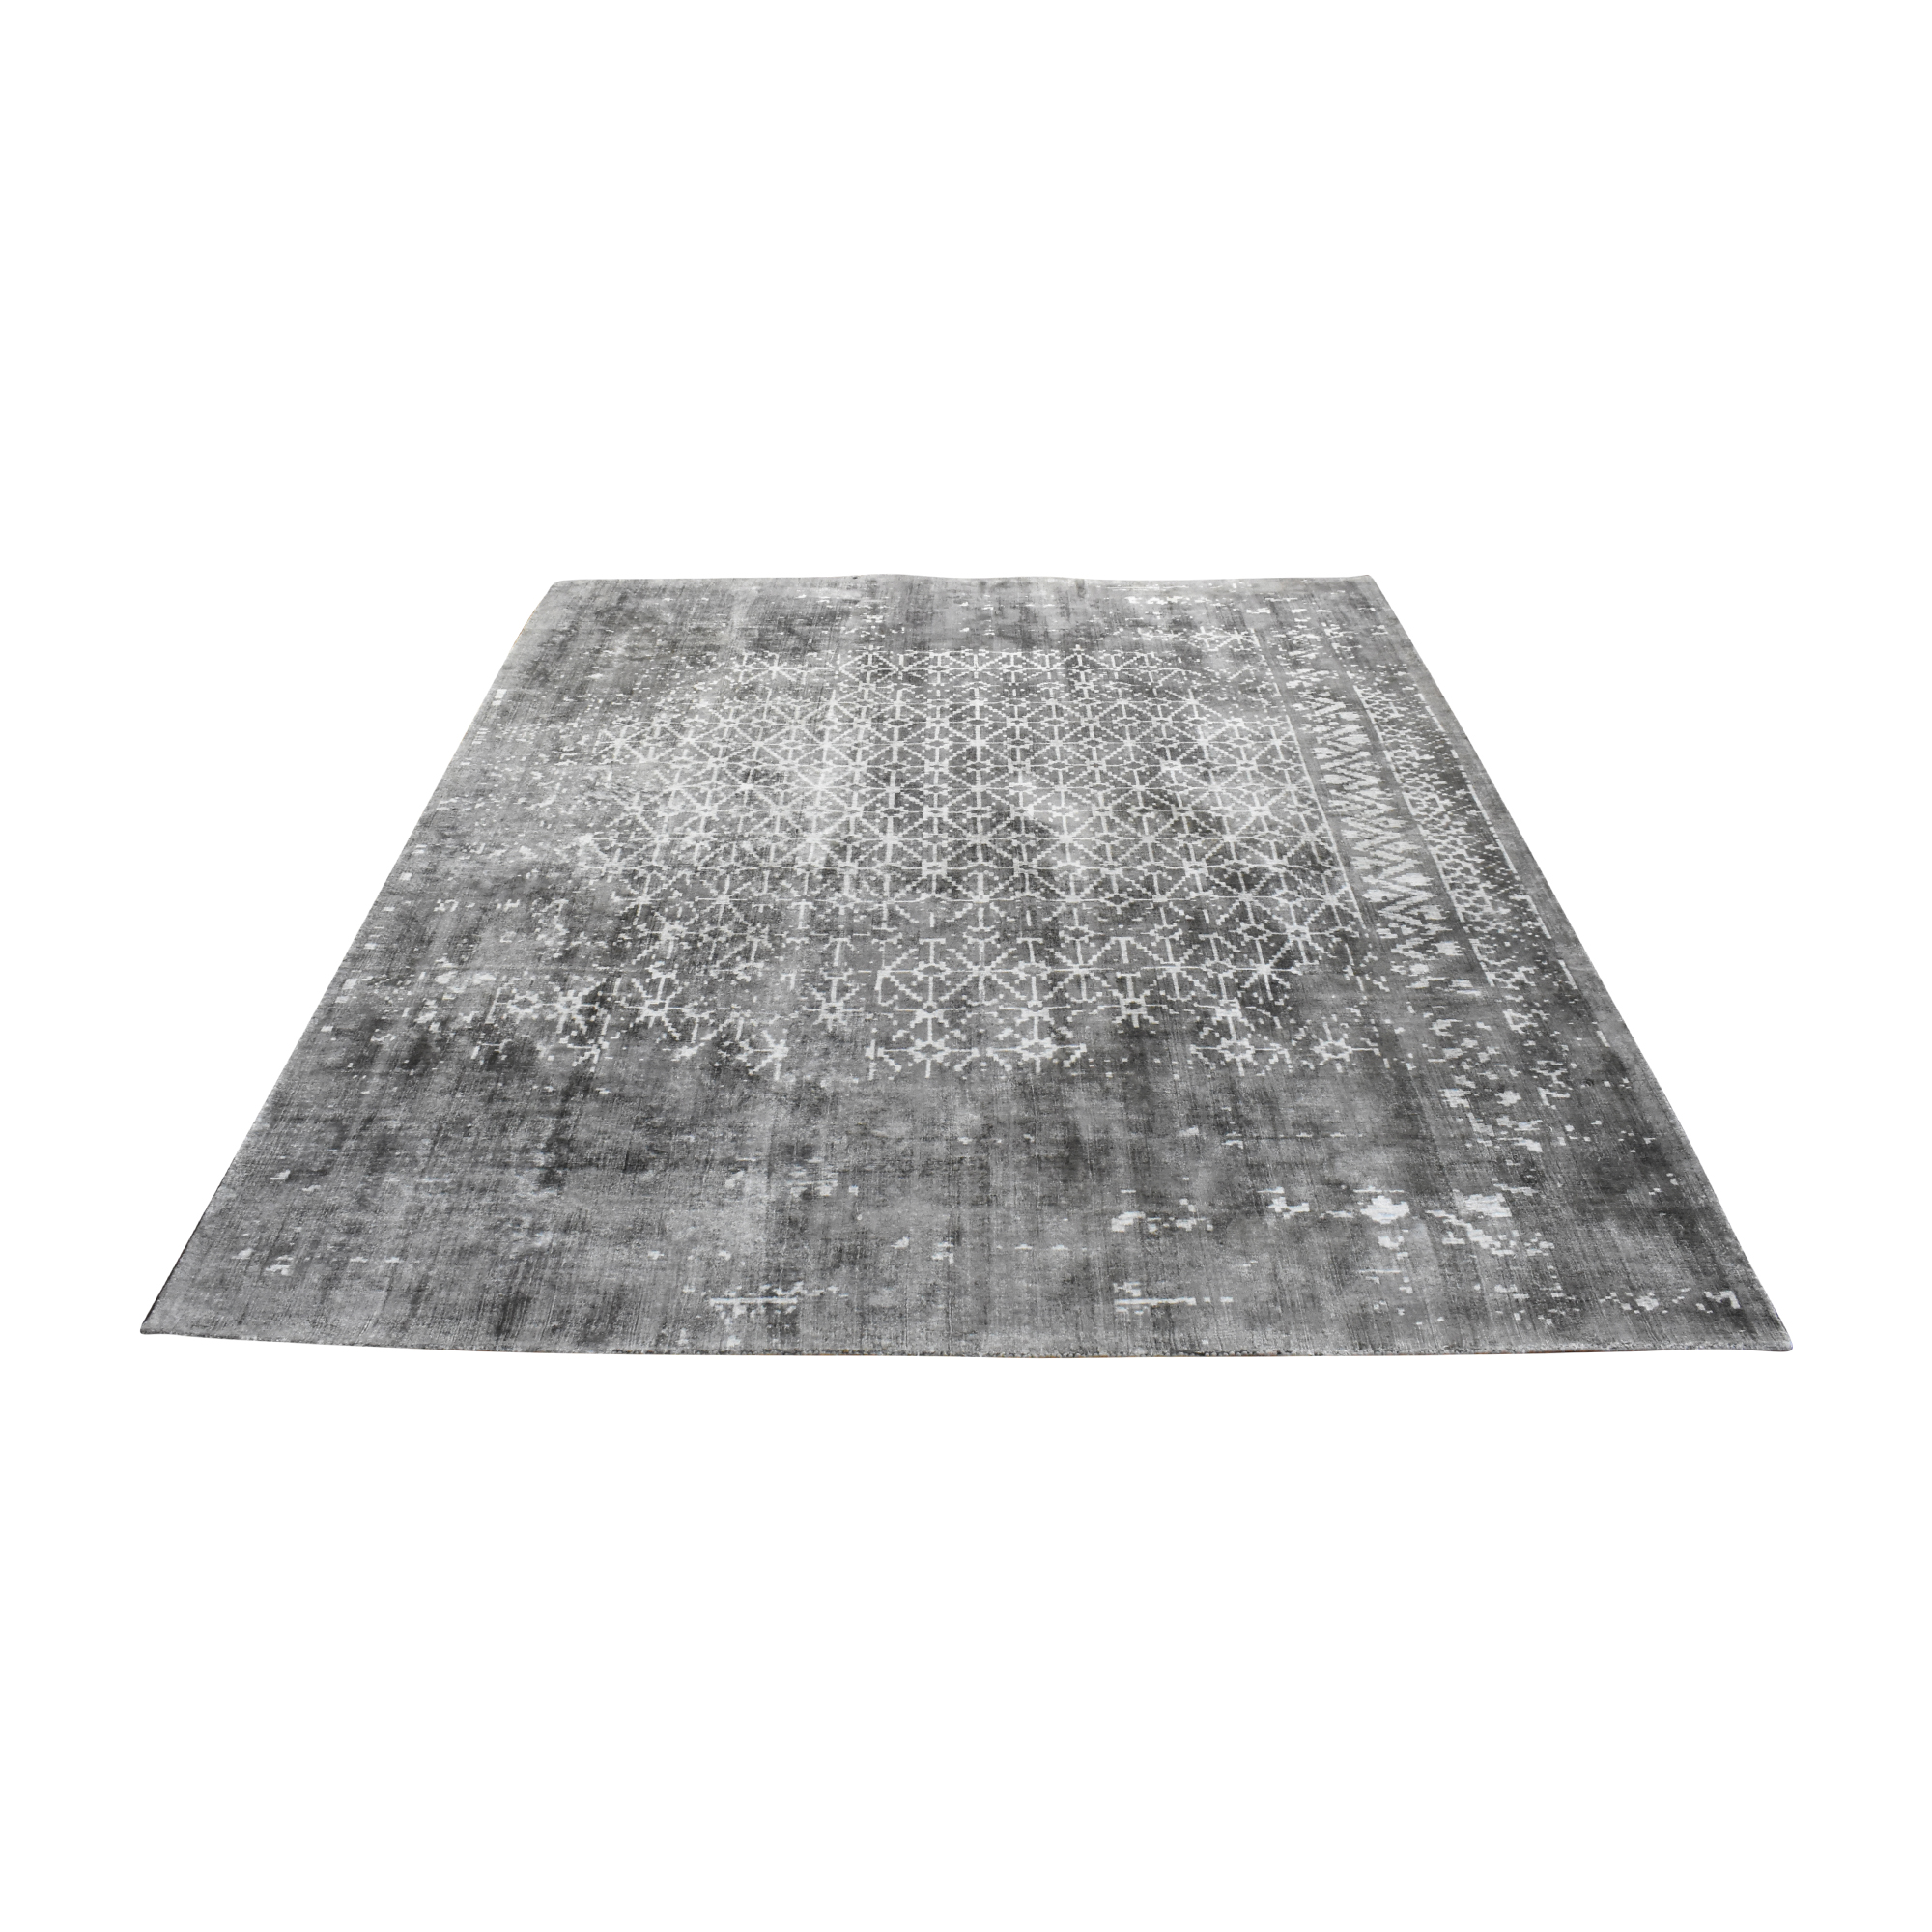 Crate & Barrel Crate & Barrel Orana Rug nyc